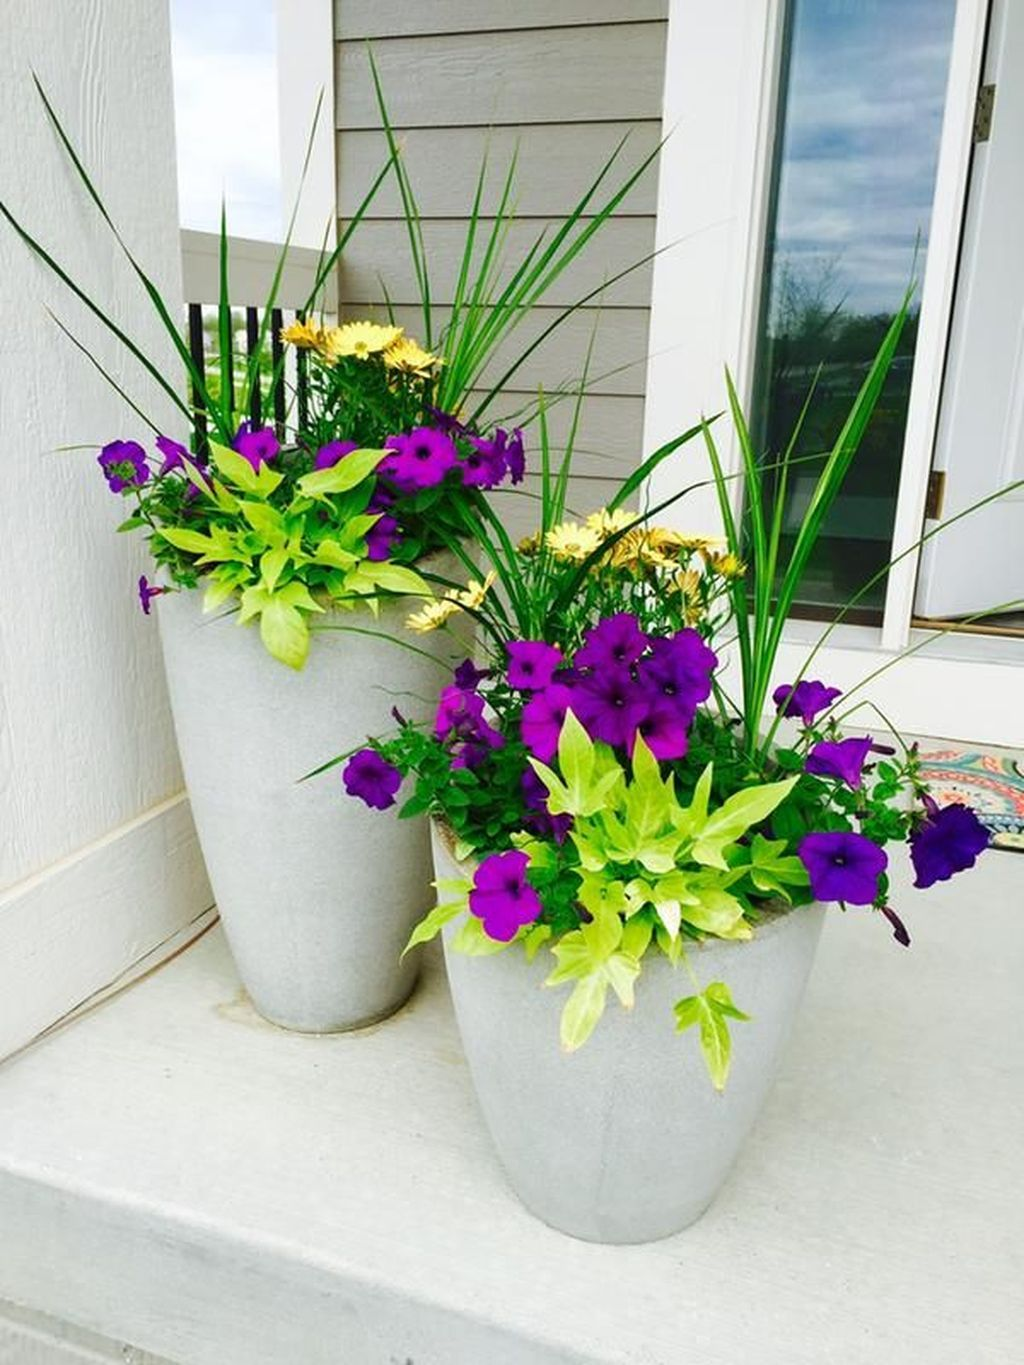 37 Lovely Flower Pots Ideas For Your Garden That Will Amaze You In 2020 Front Porch Flowers Porch Flowers Container Gardening Flowers